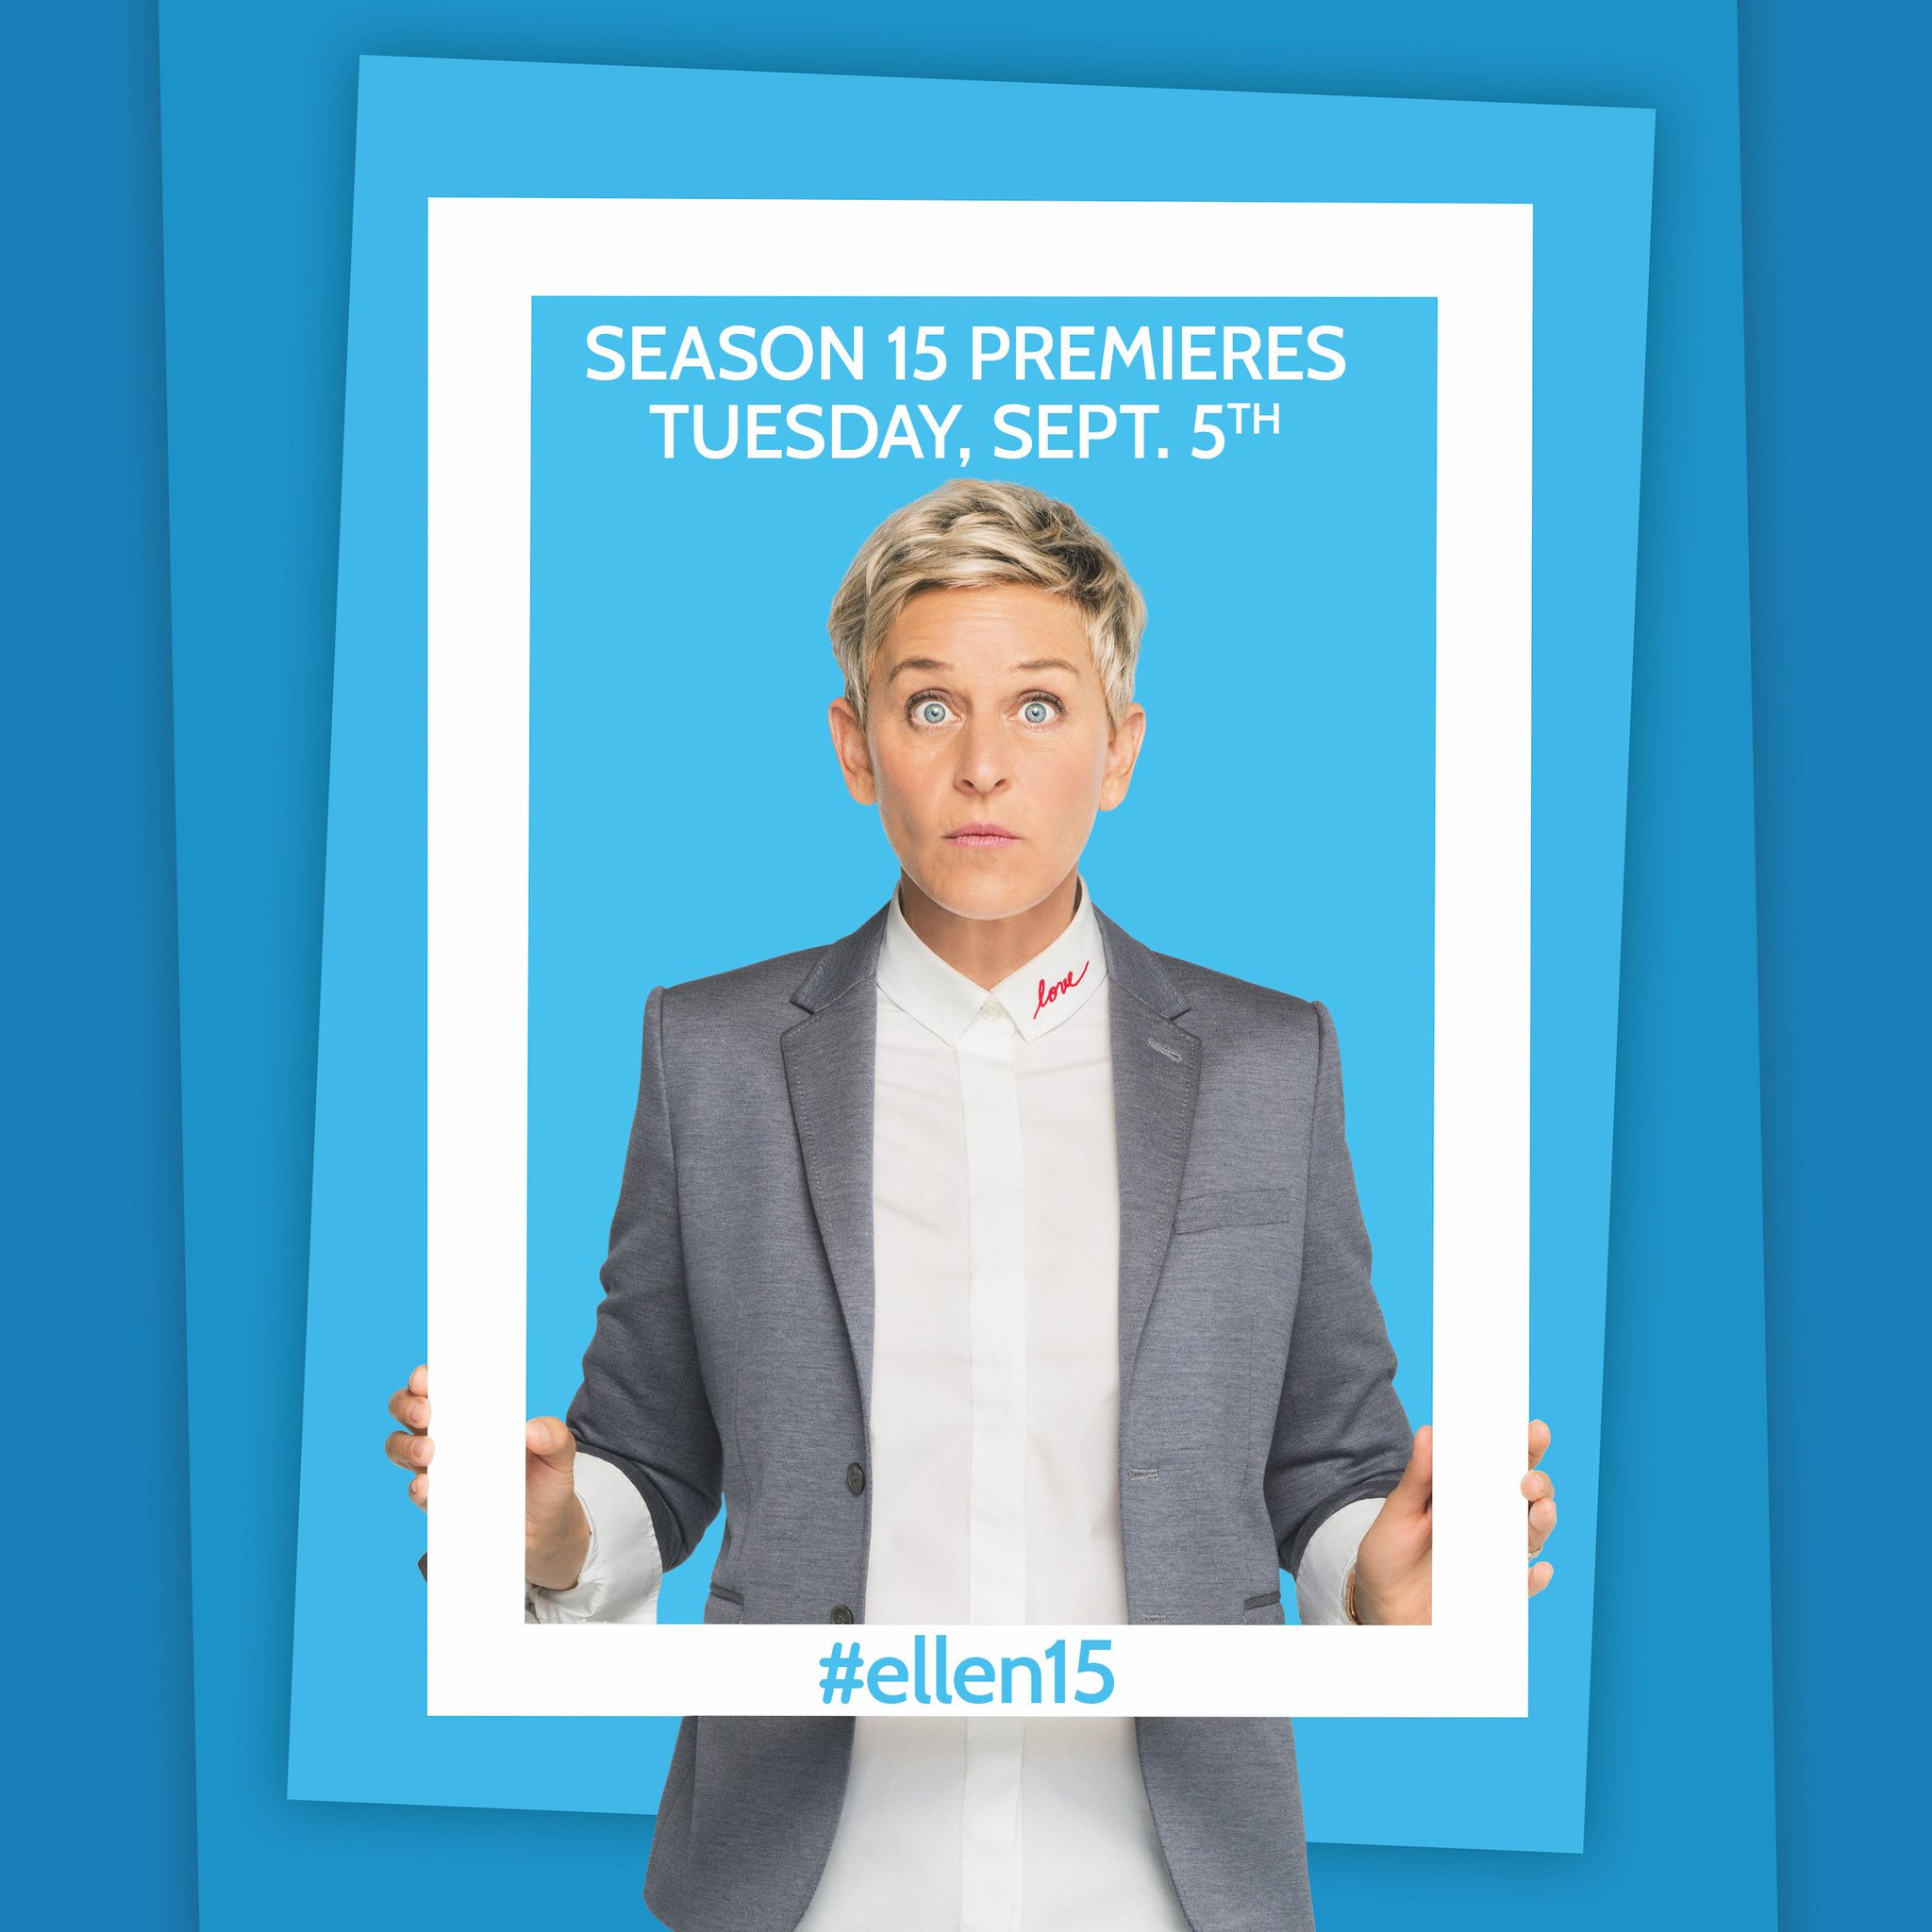 It's almost here. Season 15 starts Tuesday! #ellen15 https://t.co/JyNFeEpEhf